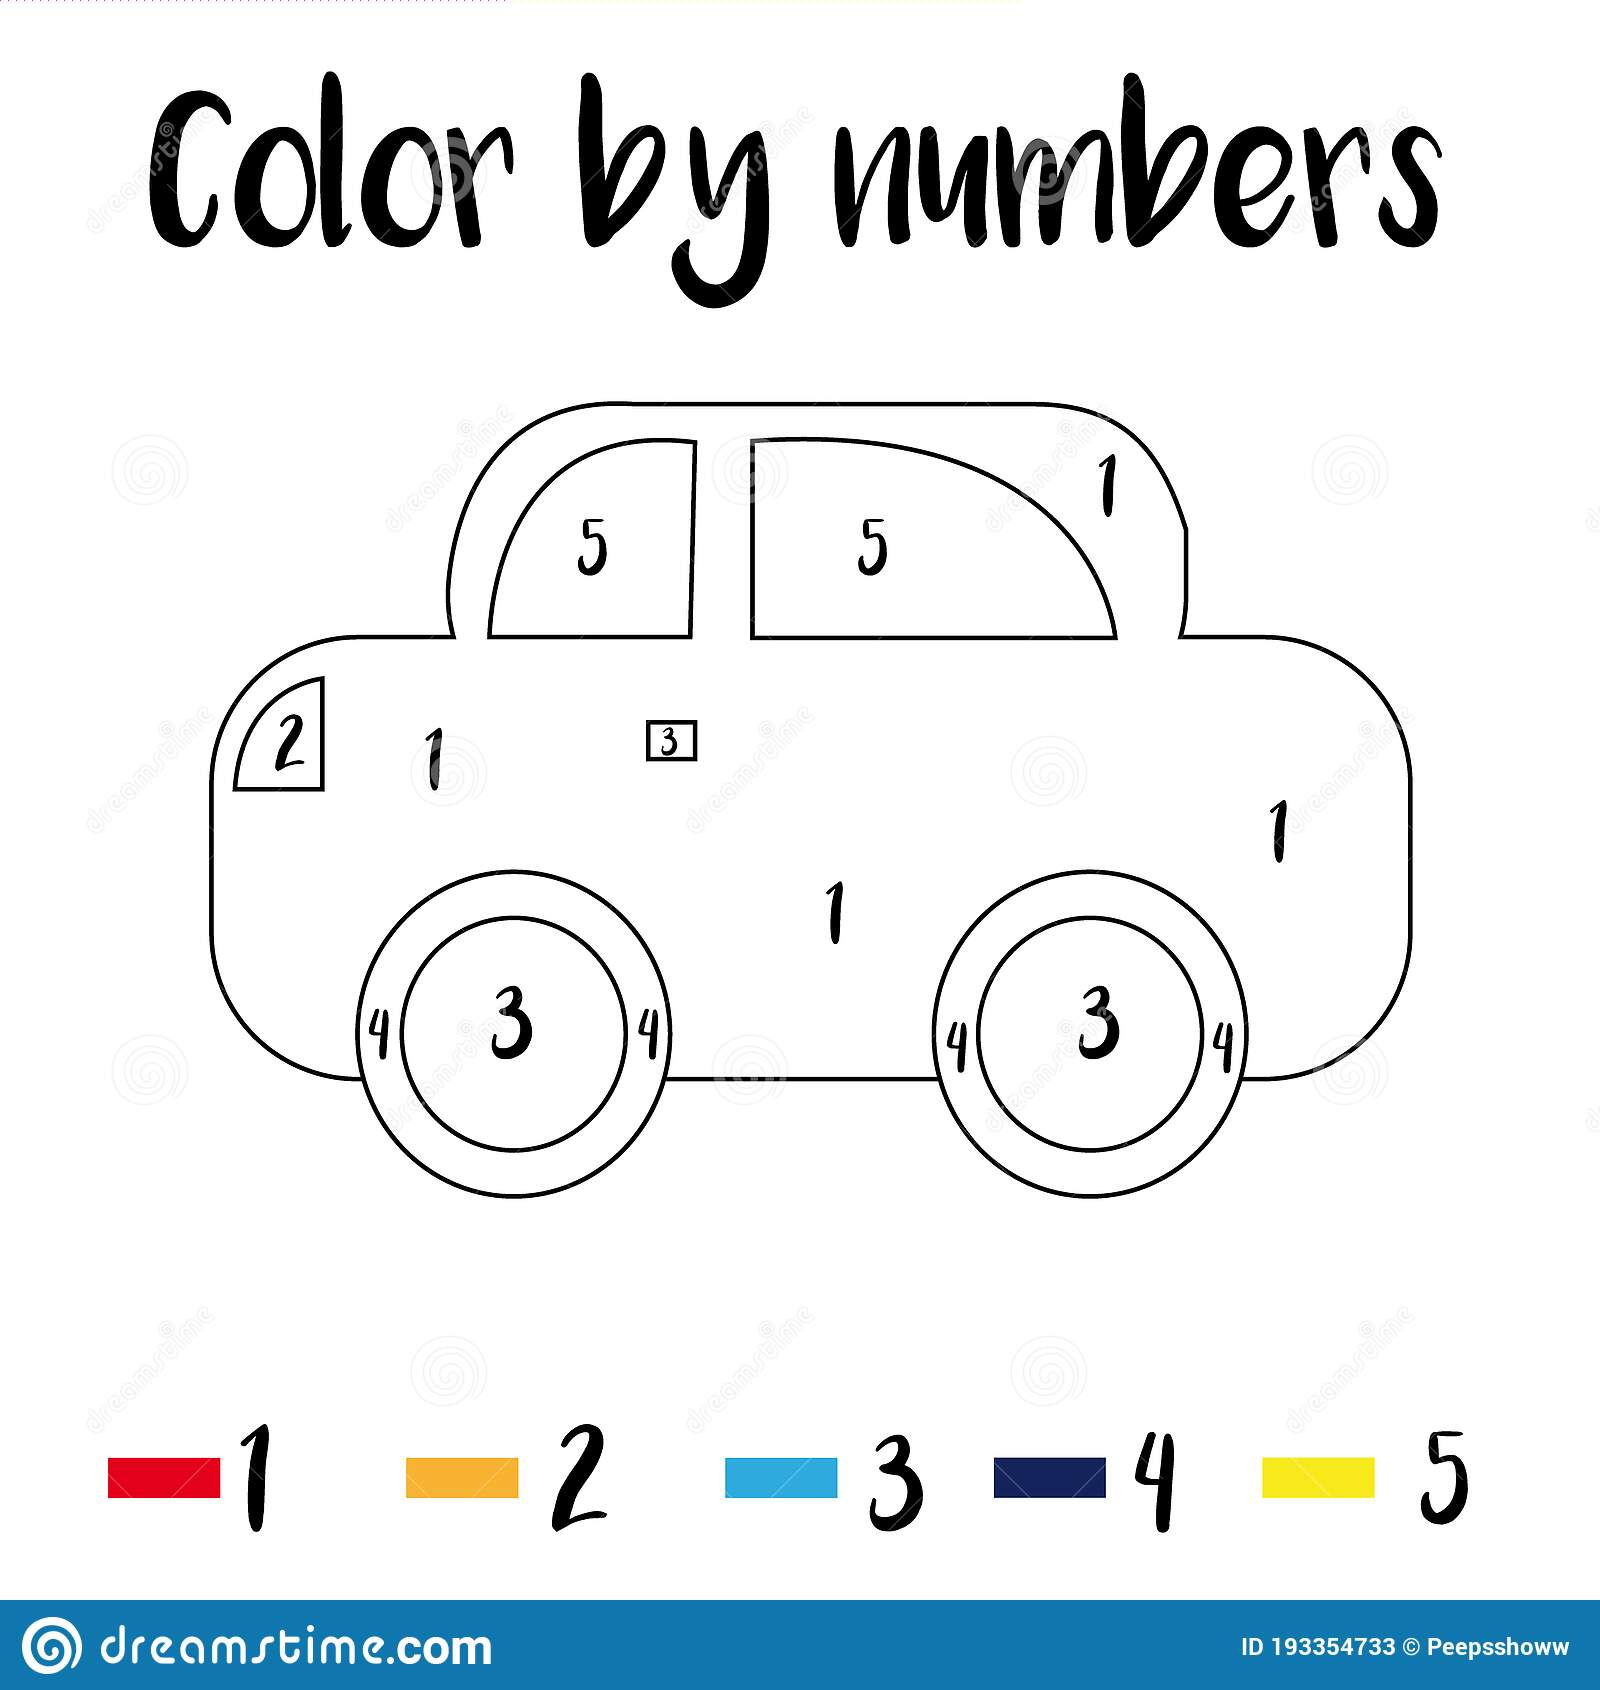 Preschool Counting Activities Coloring Page With Colorful